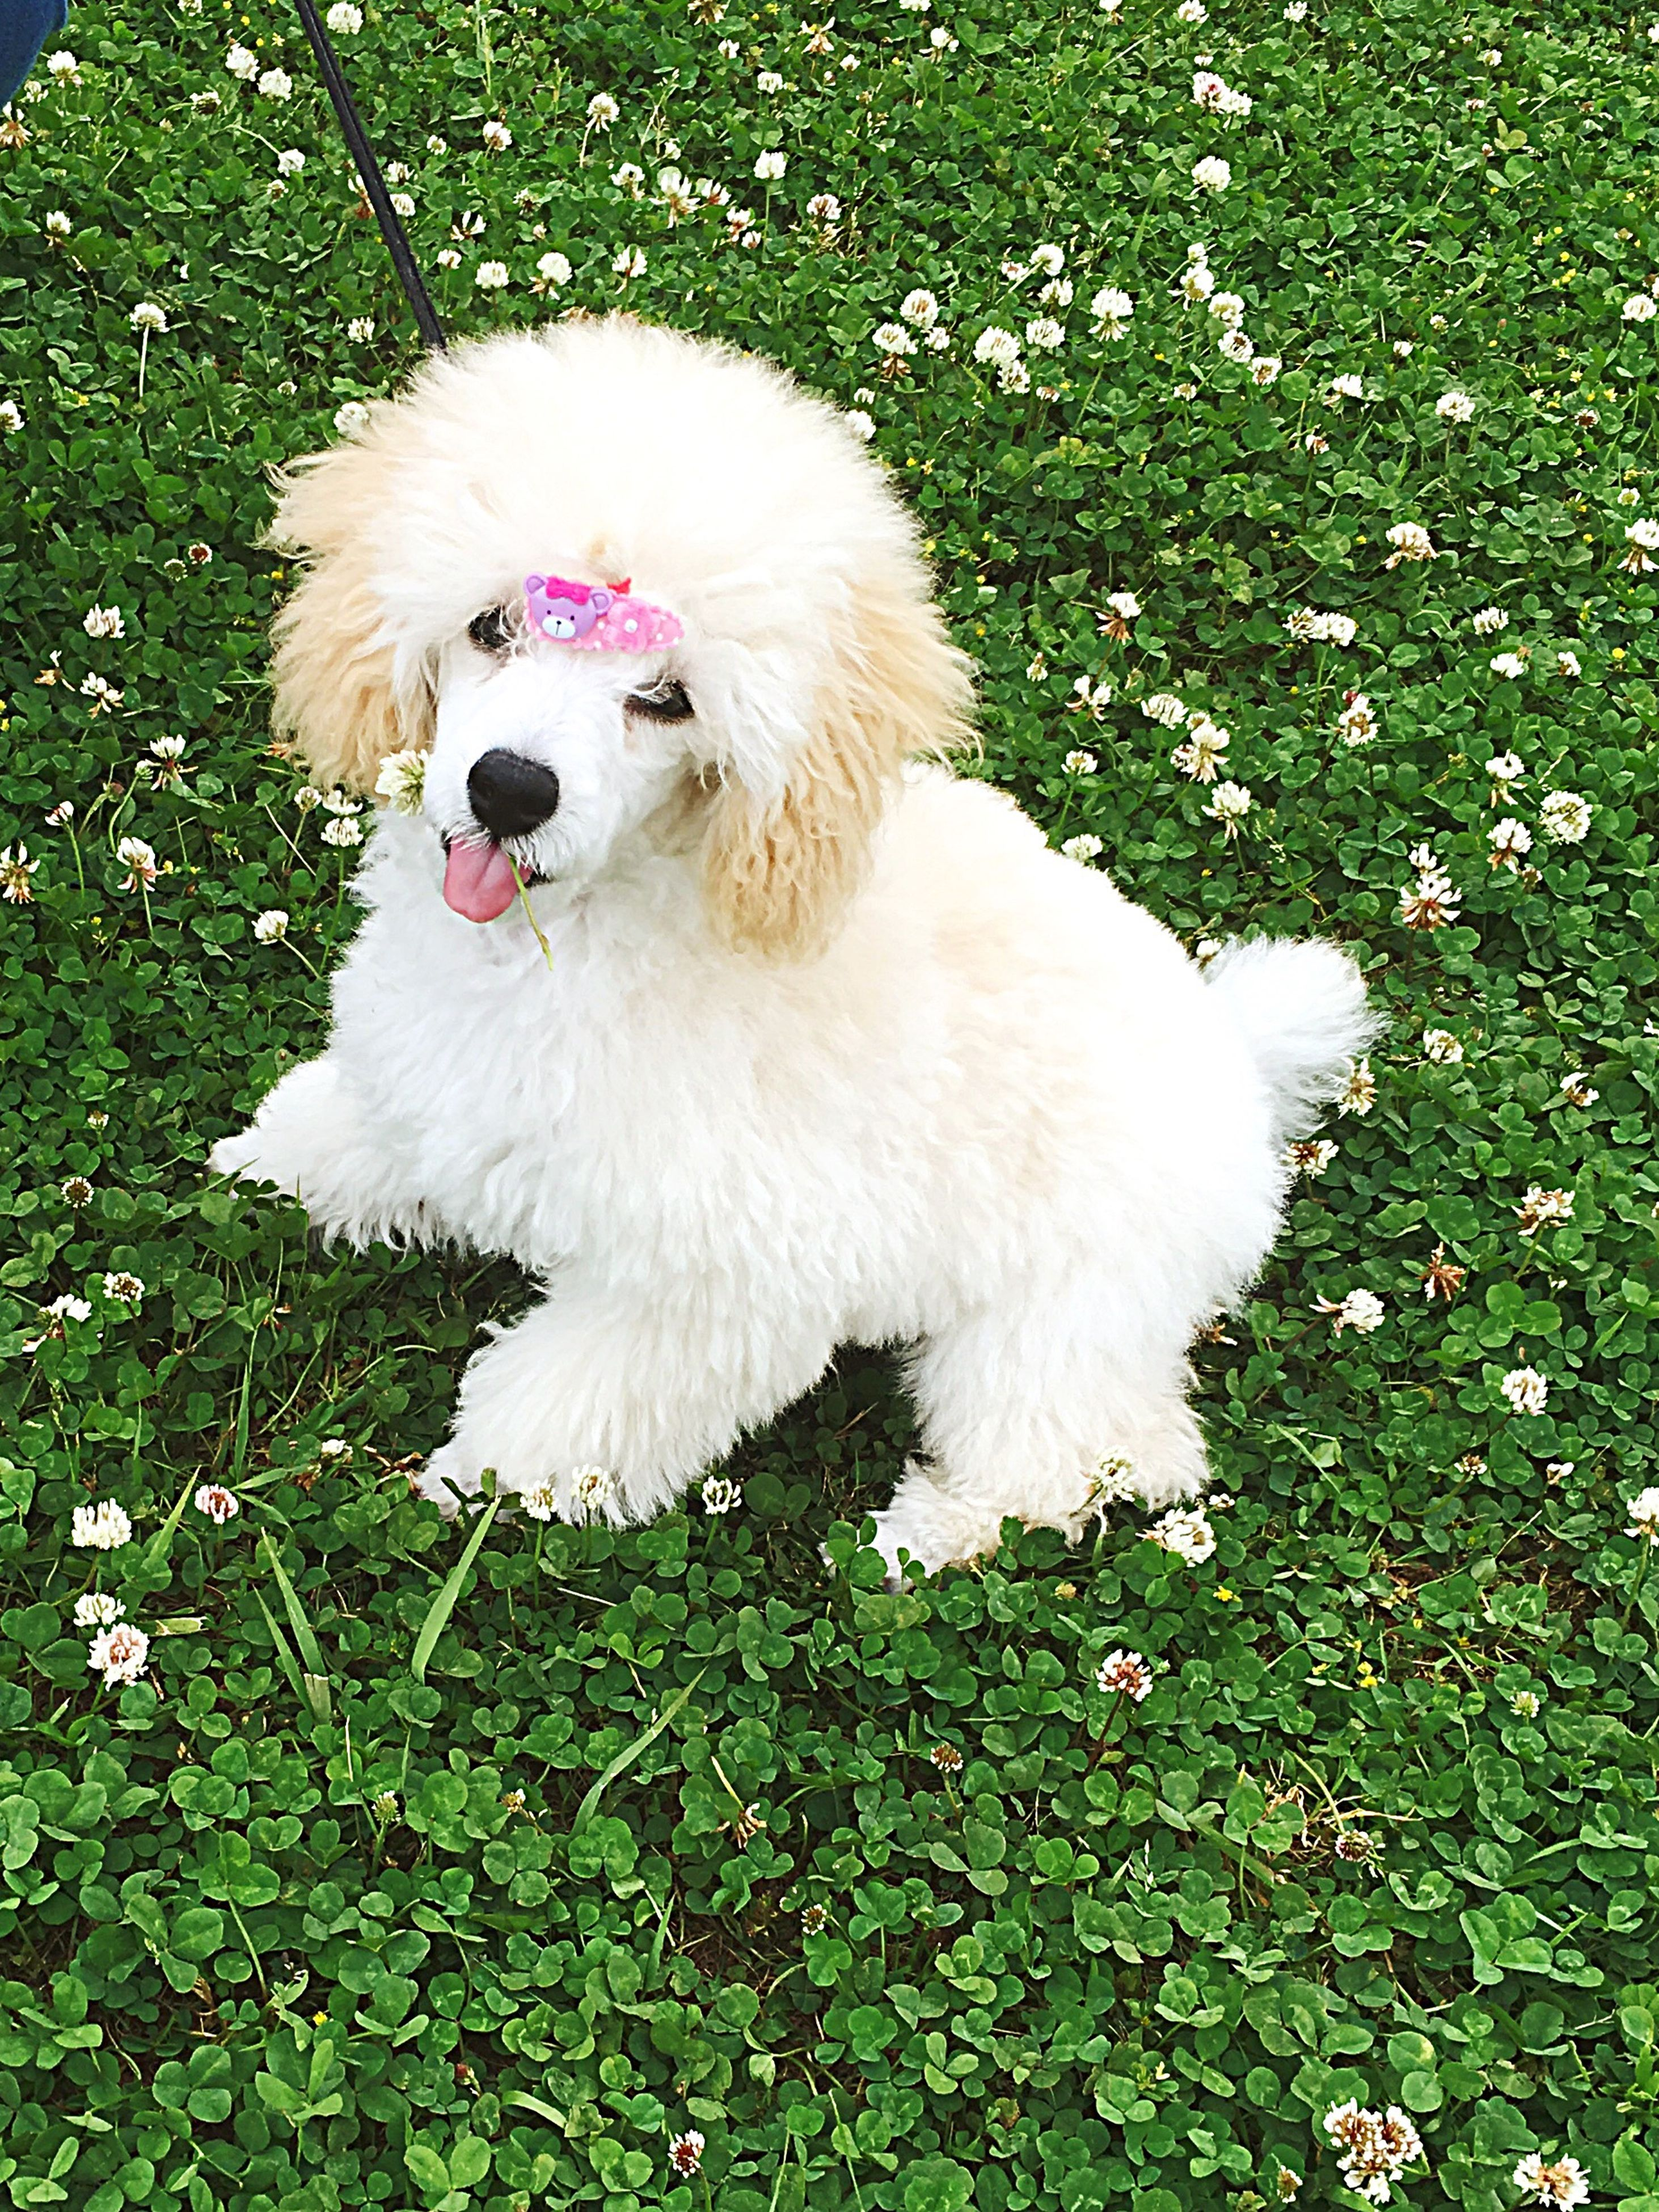 pets, animal themes, dog, grass, domestic animals, mammal, one animal, no people, green color, poodle, outdoors, nature, day, pomeranian